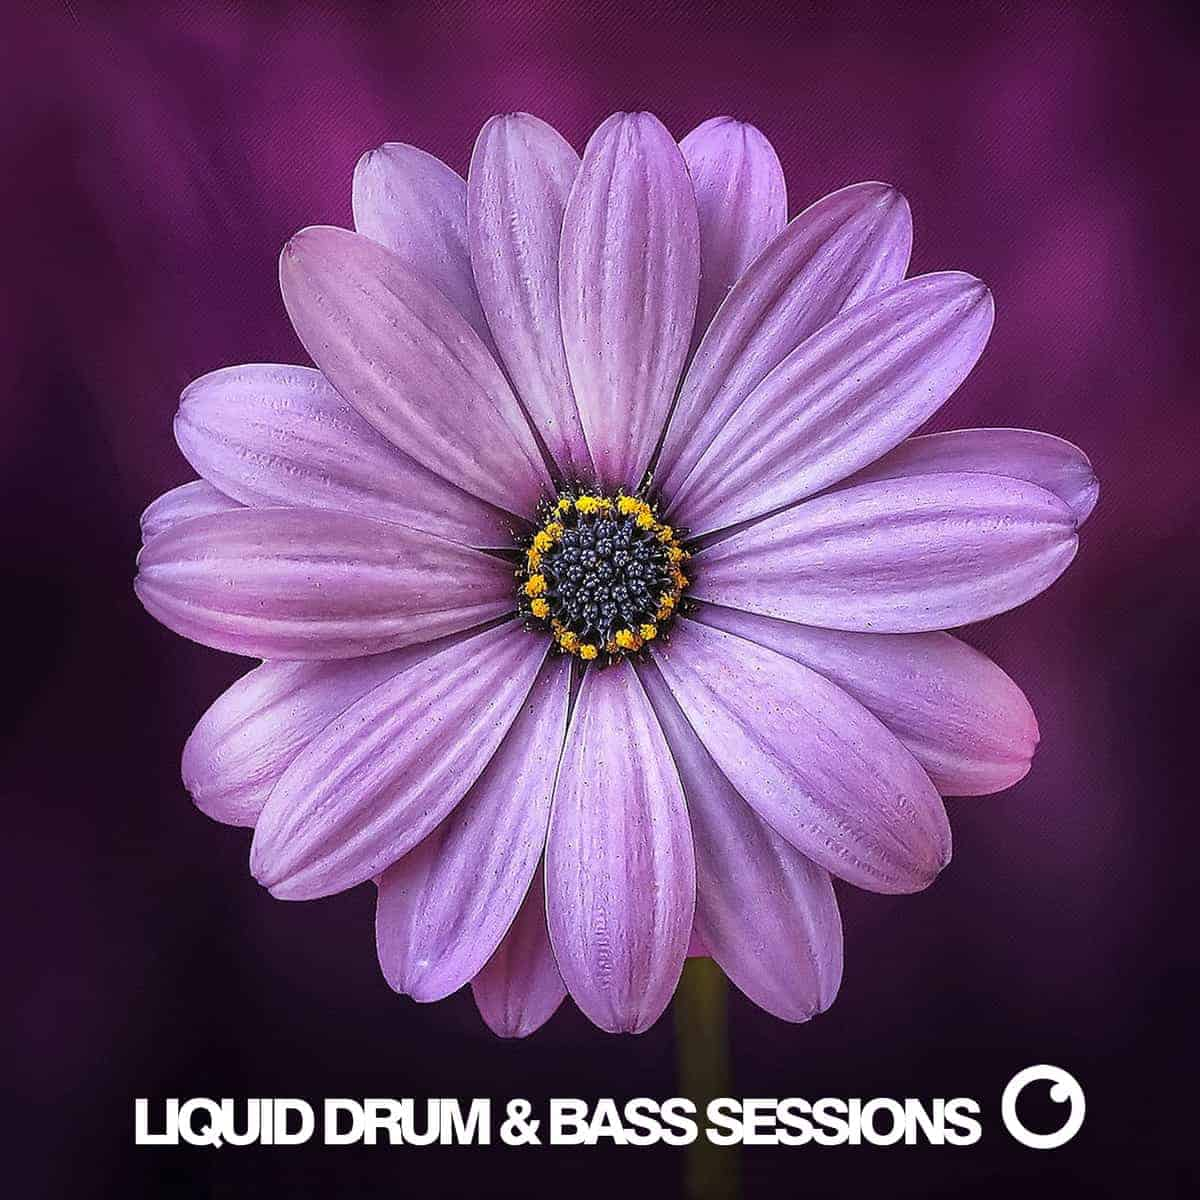 Liquid Drum and Bass Sessions